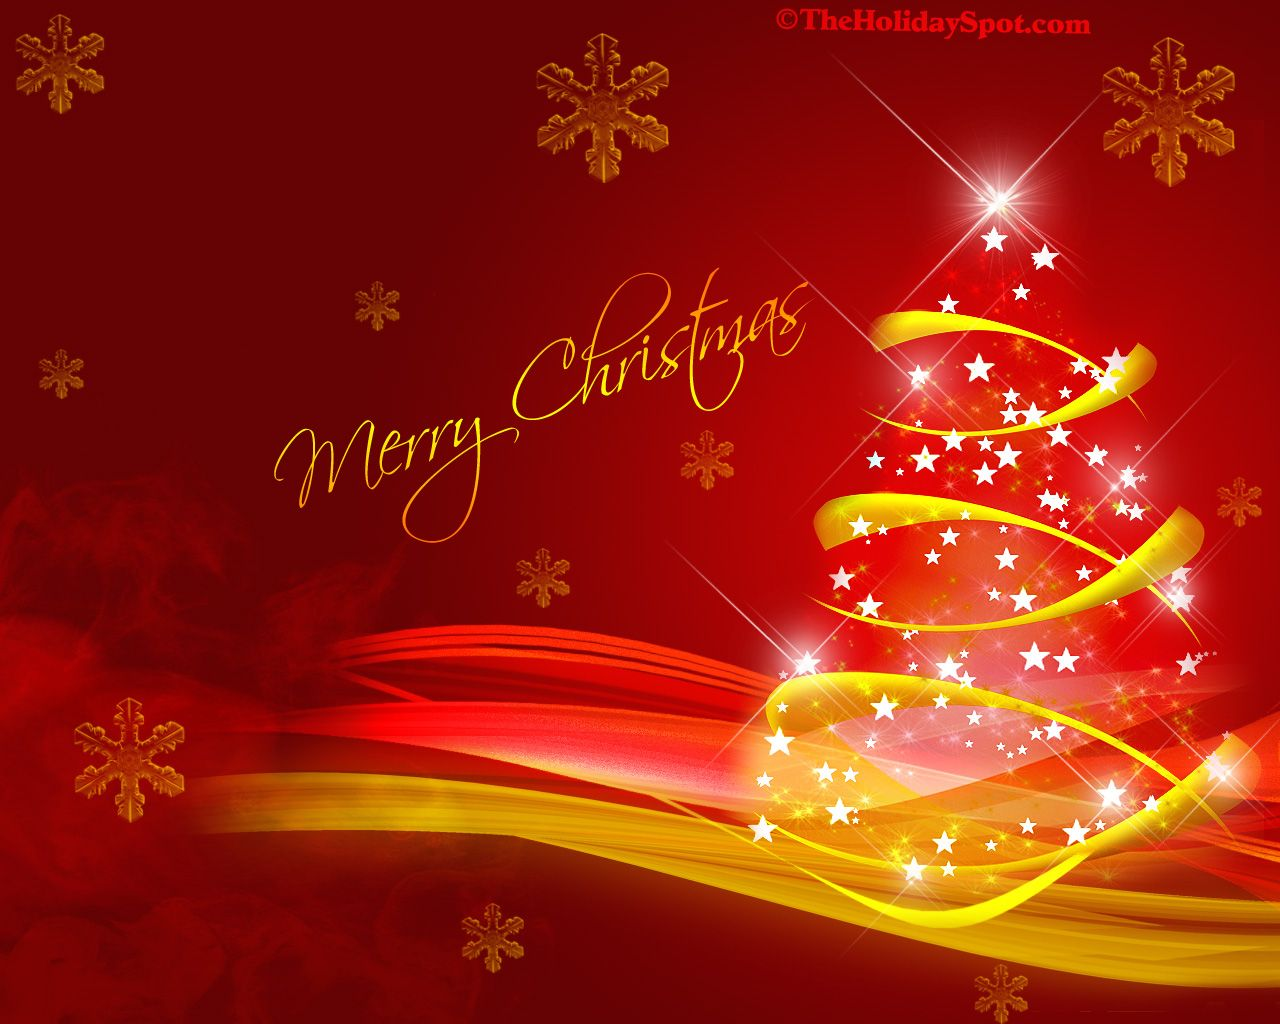 HD Wallpaper And Background Photos Of Merry Christmas For Fans Images